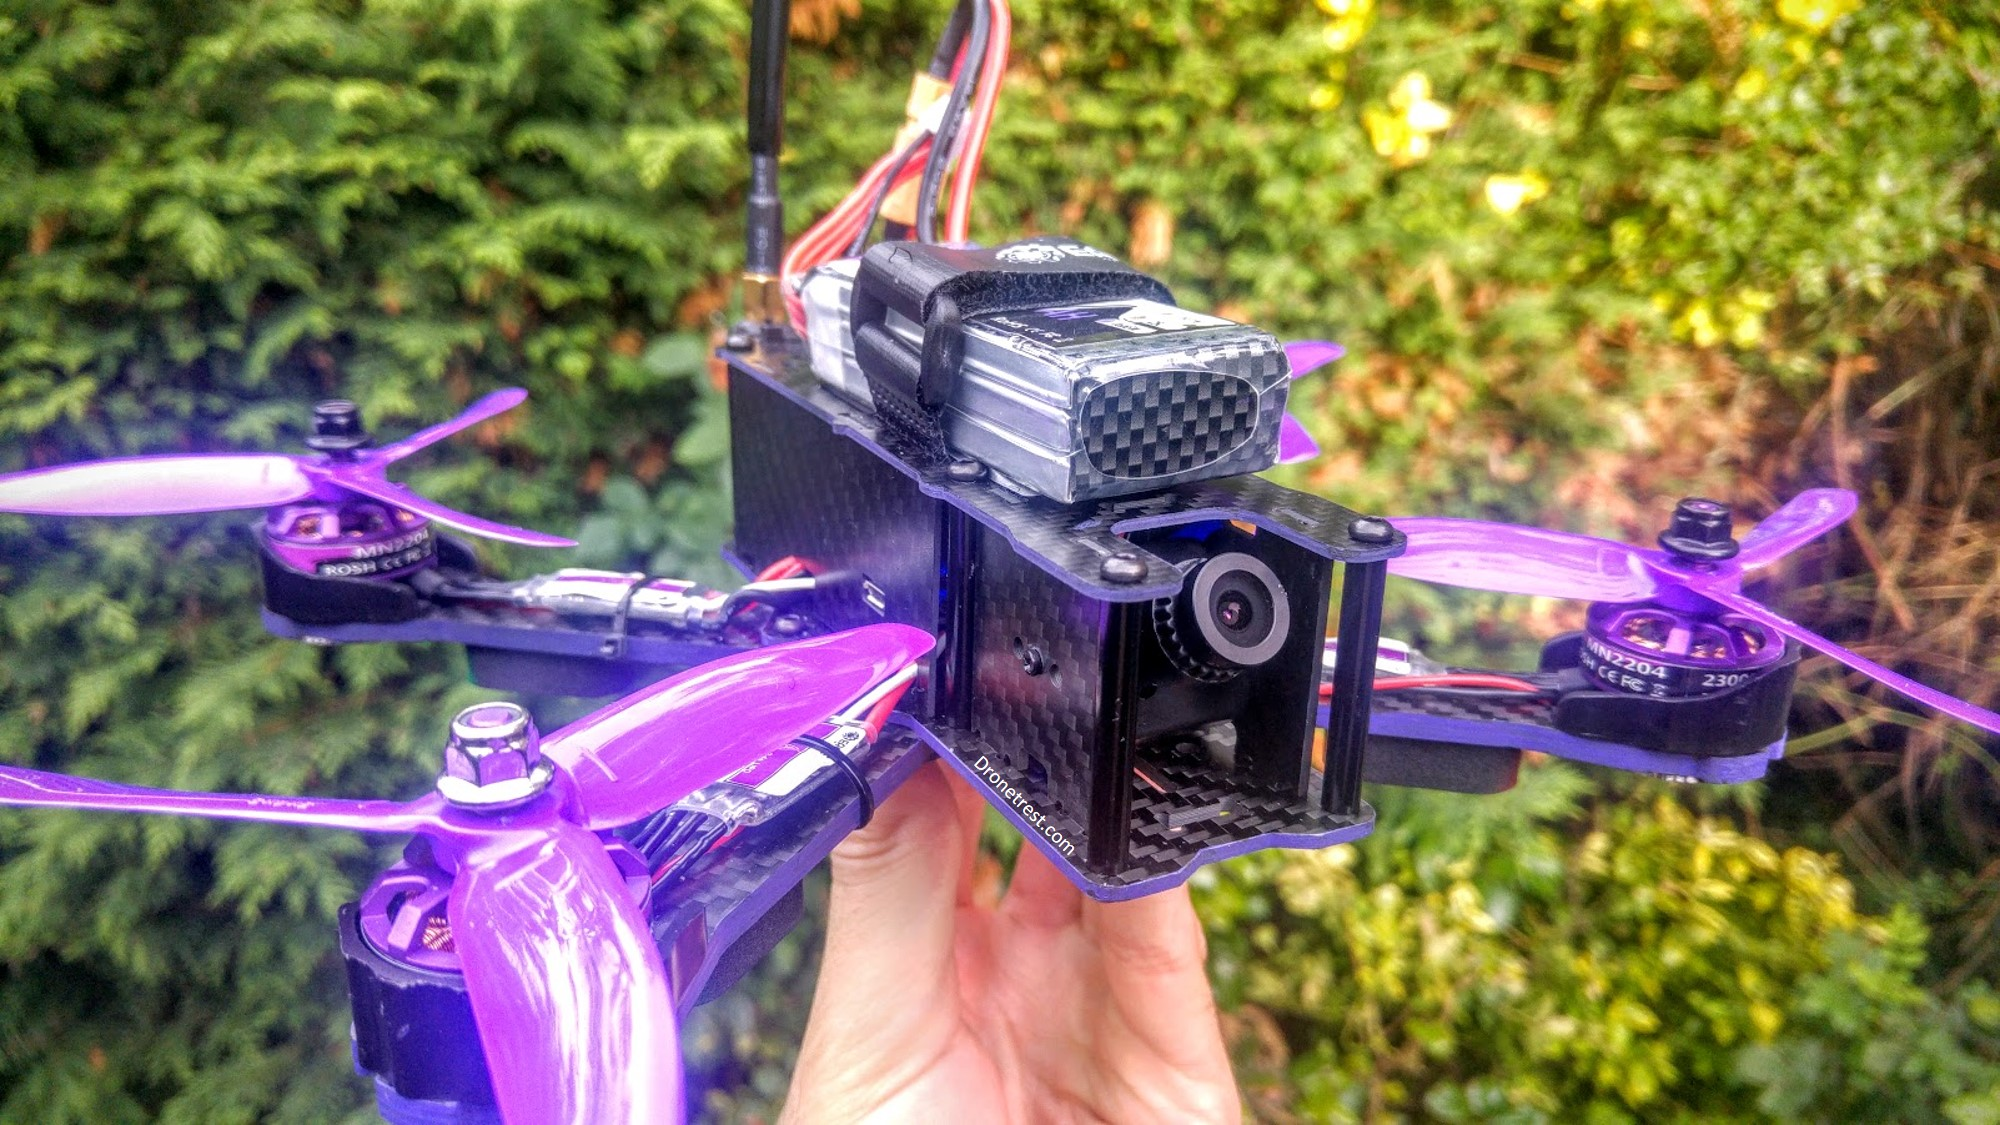 Wizard X220 – An RTF Freestyle Quad